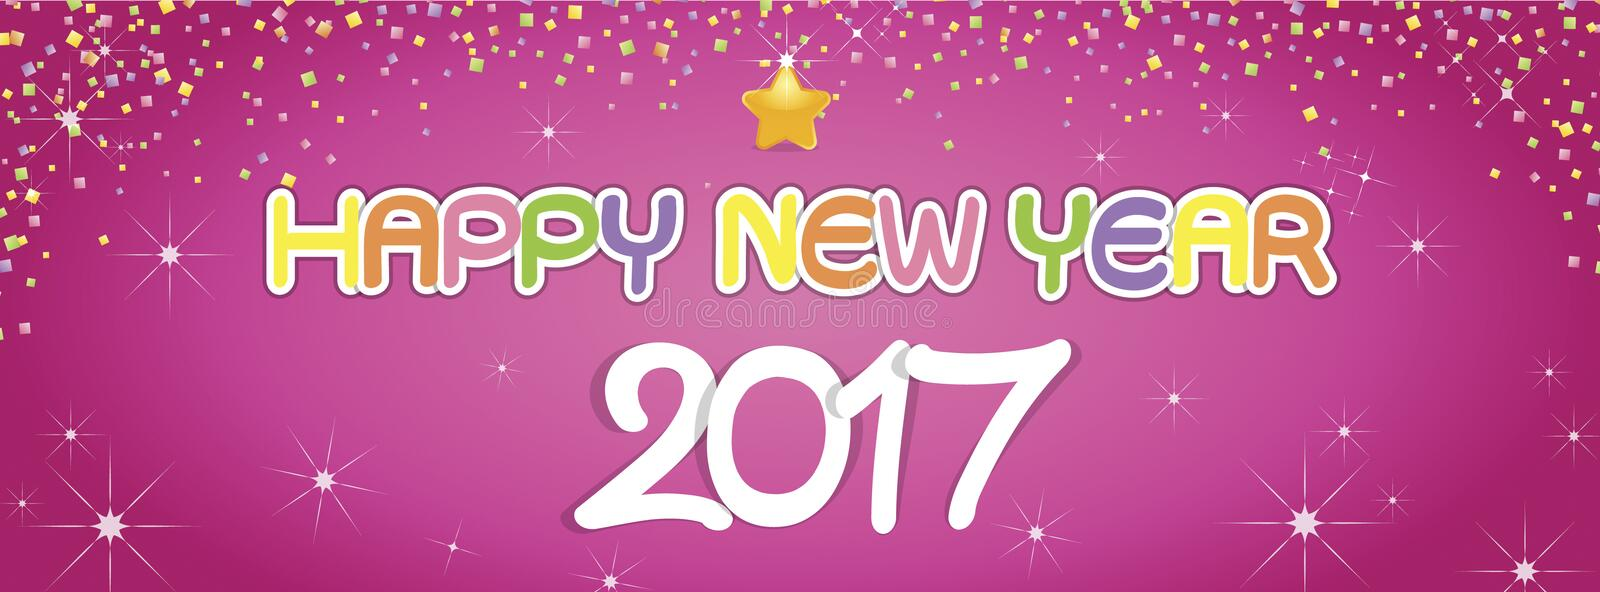 Background Happy New Year greetings royalty free stock images